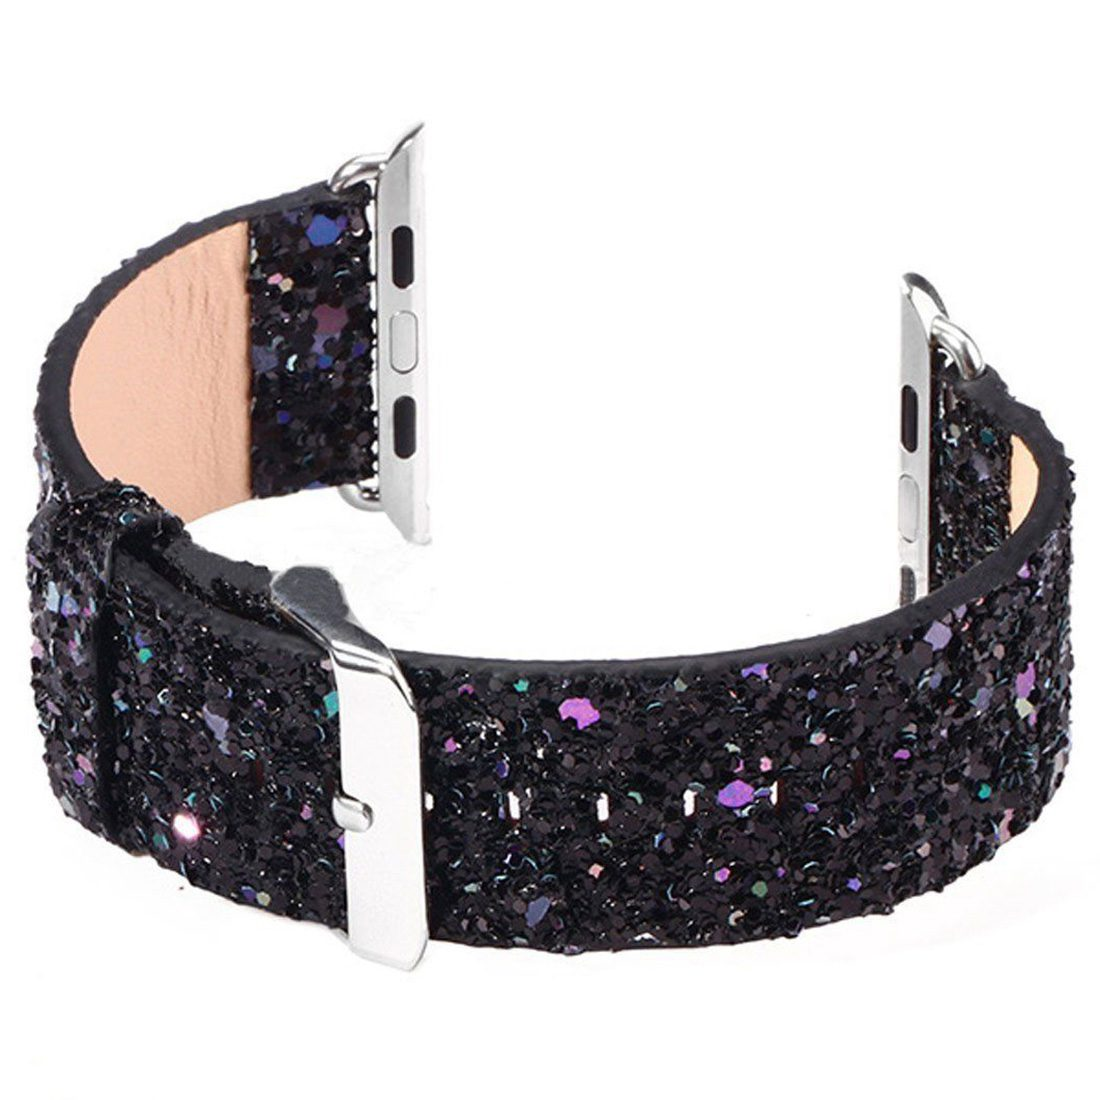 Bling Glitter Leather Watch Clasp Loop Band Strap for Apple Watch 38mm Black мультиварка polaris ppc 1105ad